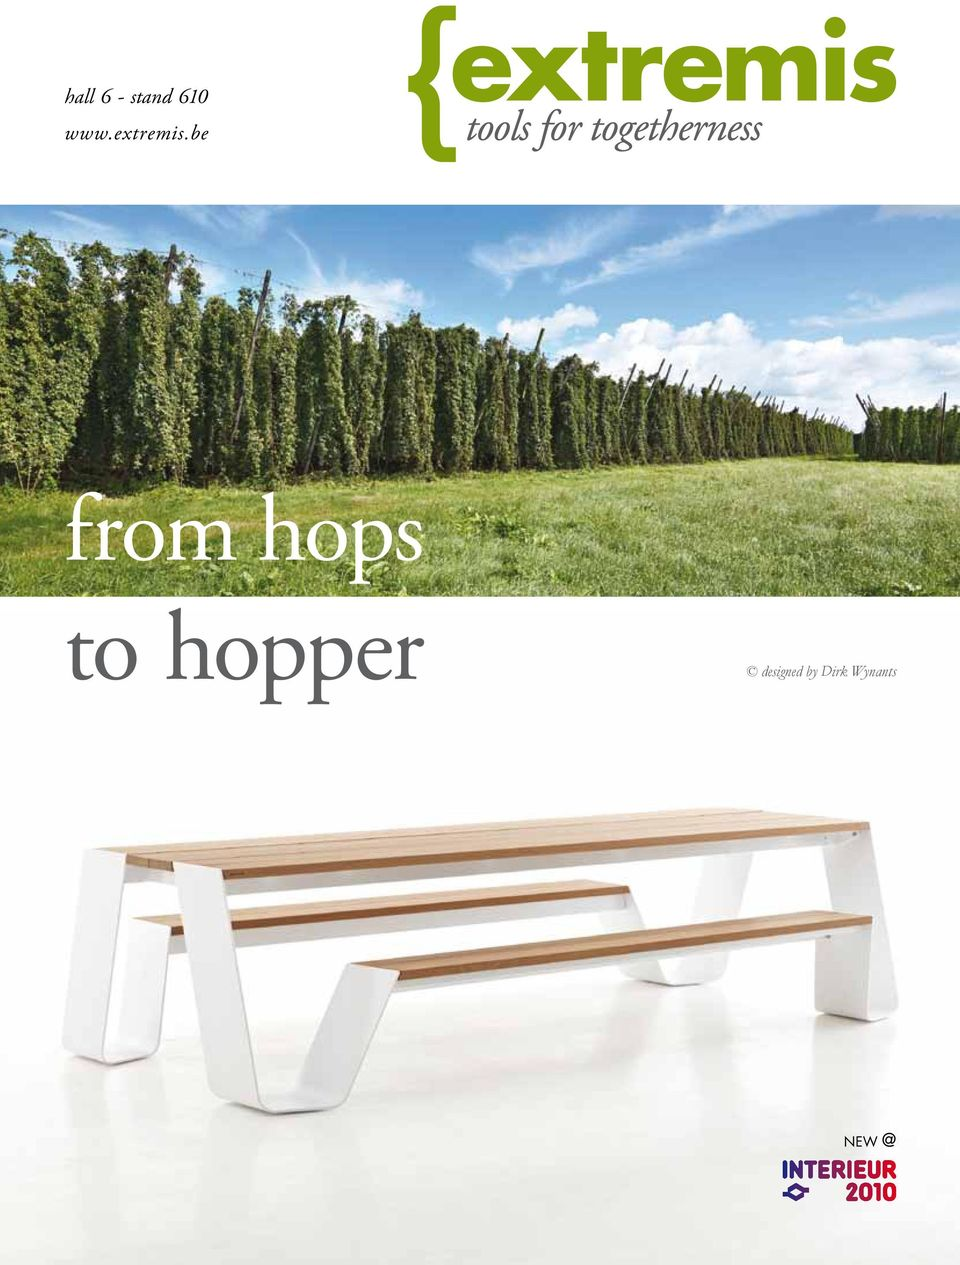 be from hops to